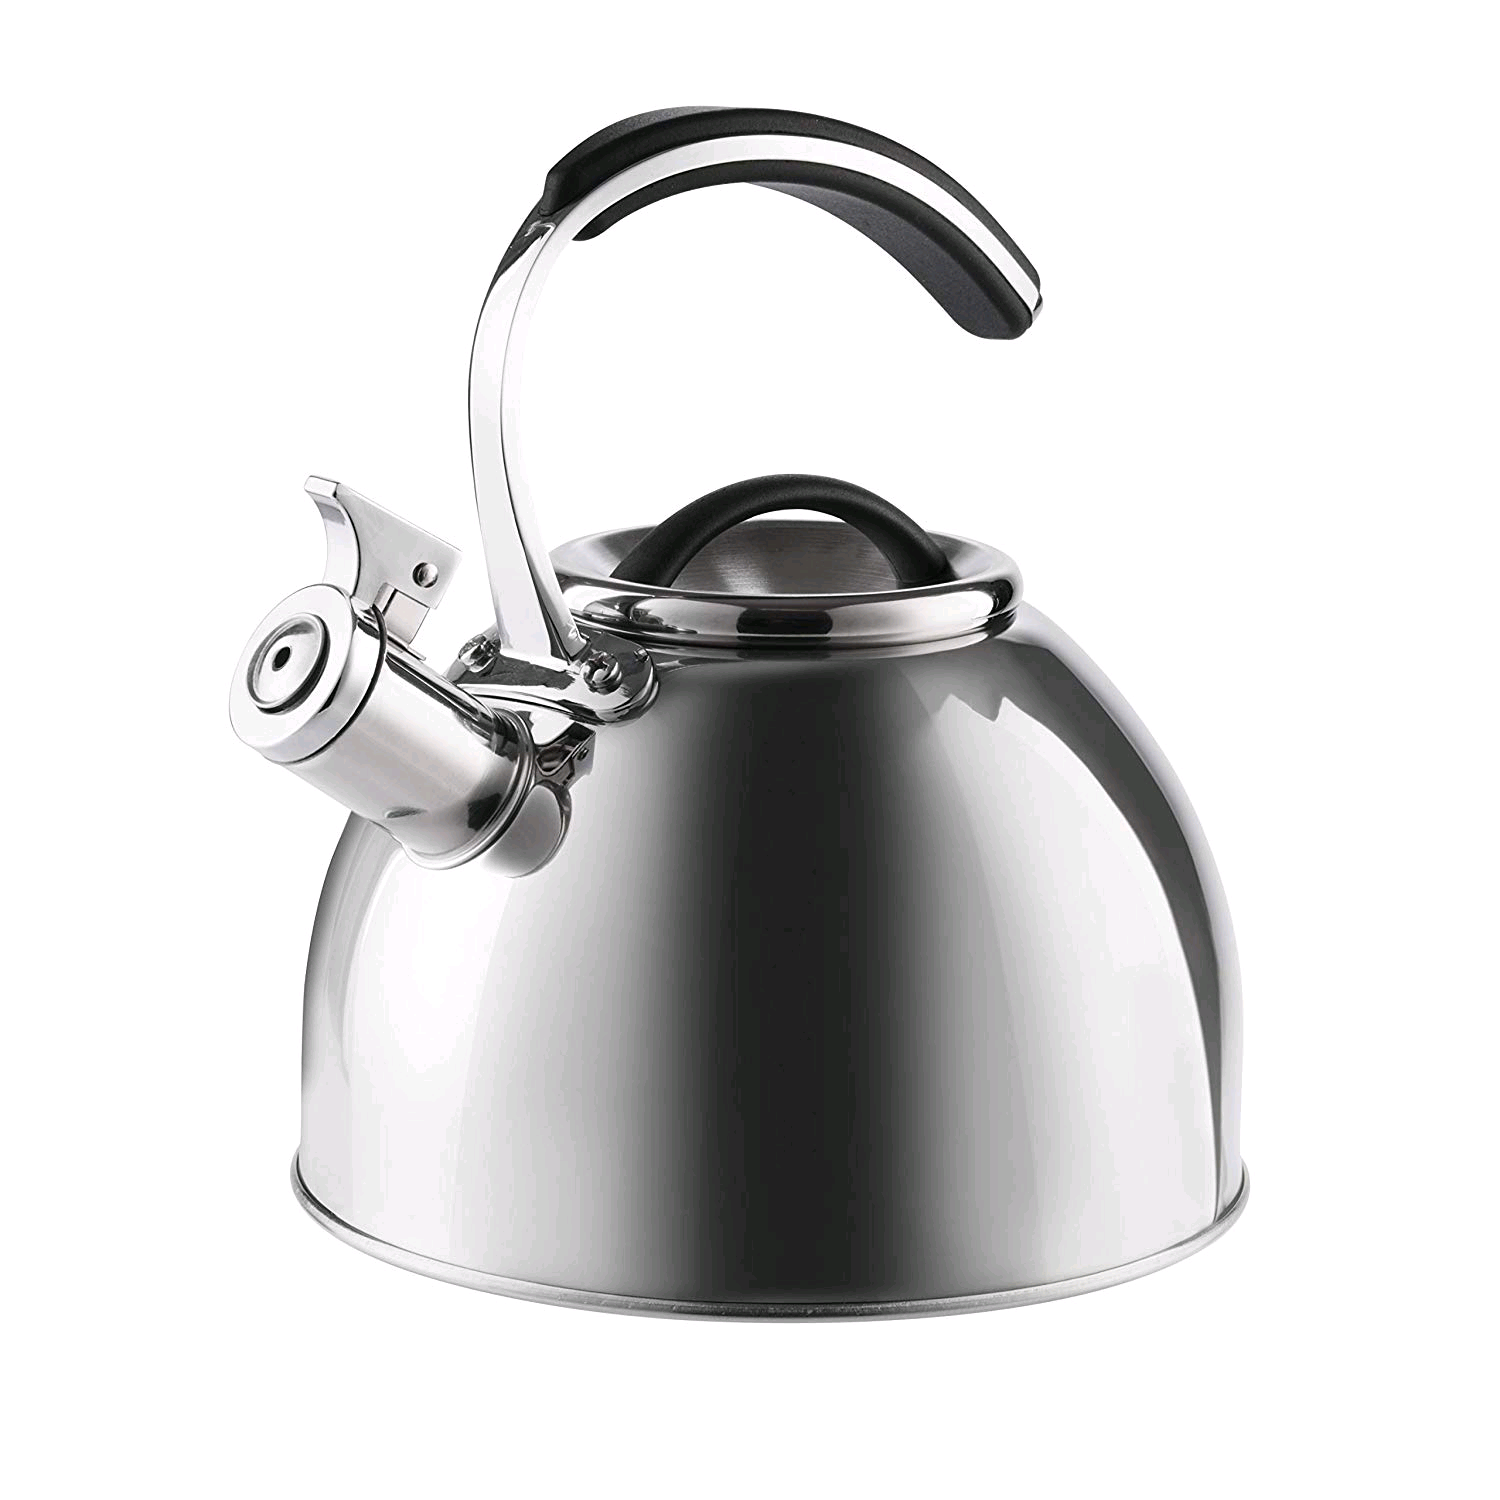 Morphy Richards Whistling Stove Kettle Stainless Steel 3ltr